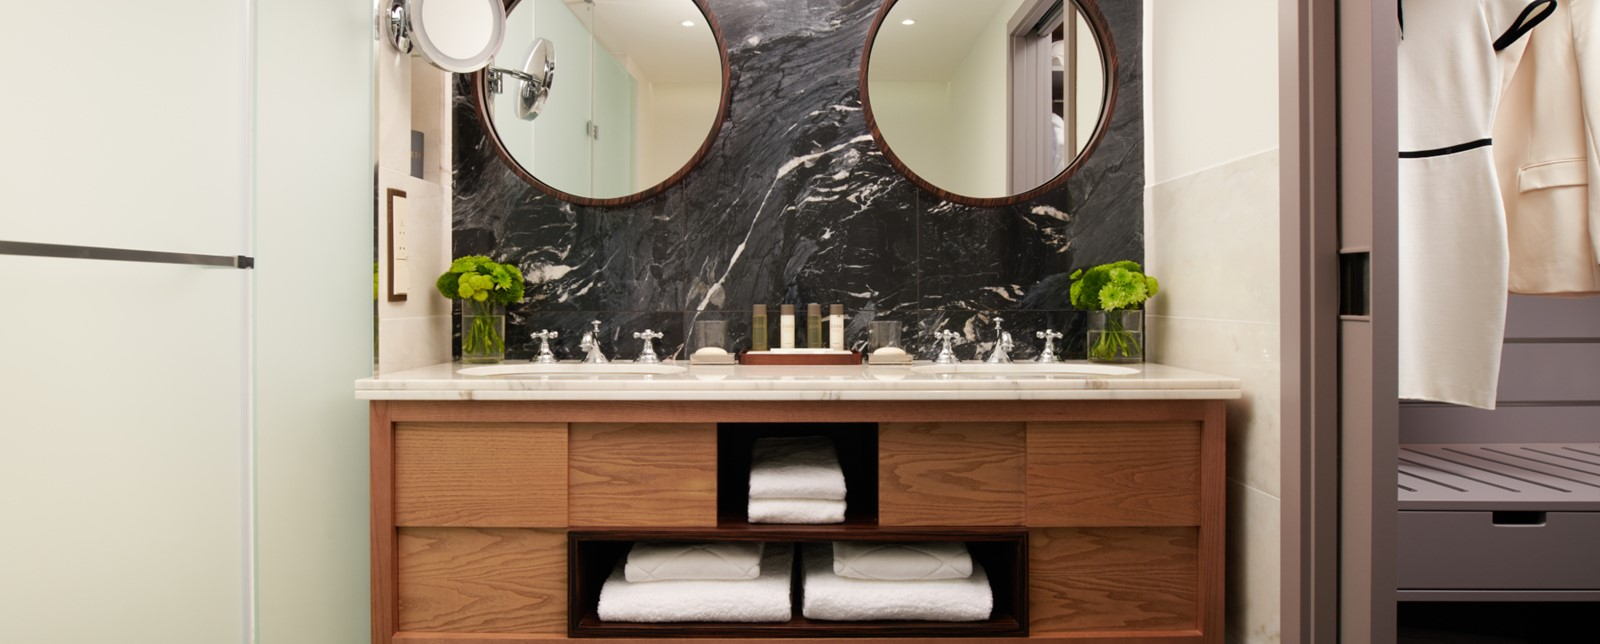 corinthia lisbon executive suite bathroom